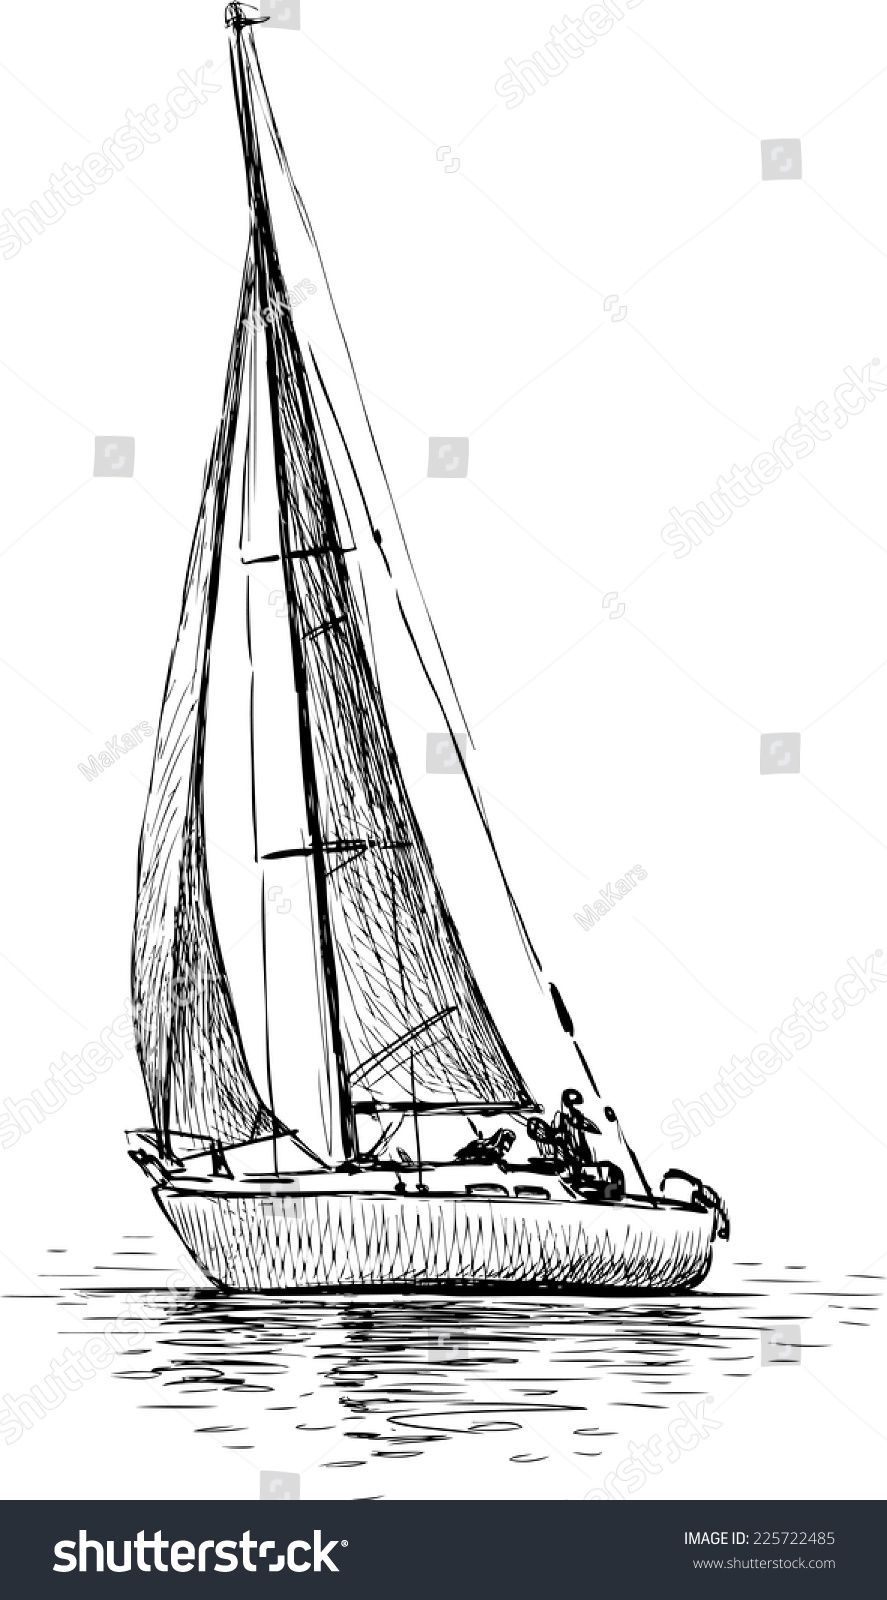 Sailing Yacht Cobaltboatsluxury Sailing Tattoo Sailboat